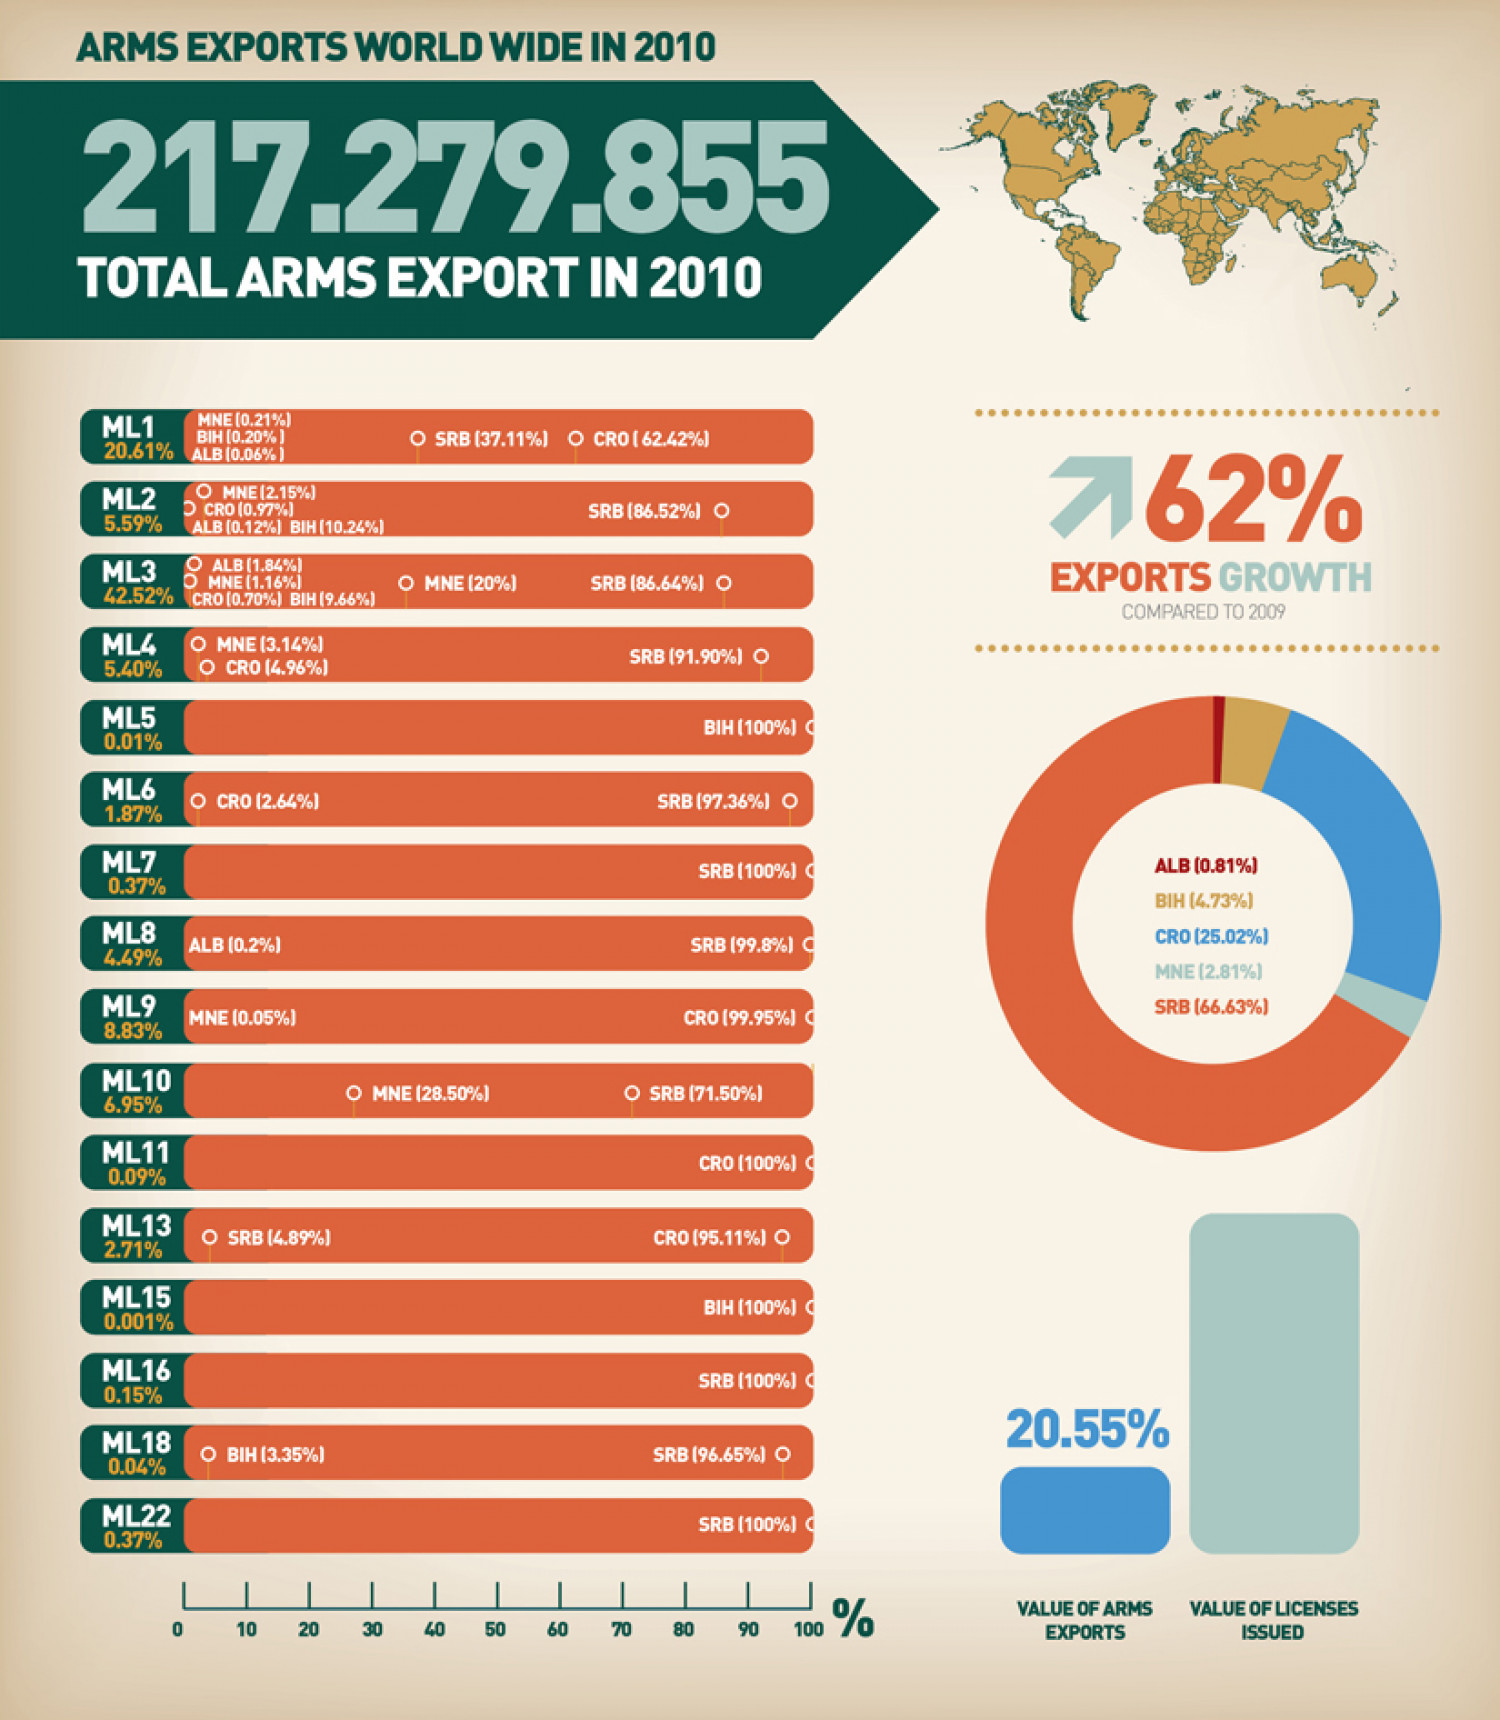 Overview of the Western Balkan Countries' Arms Exports World Wide  Infographic